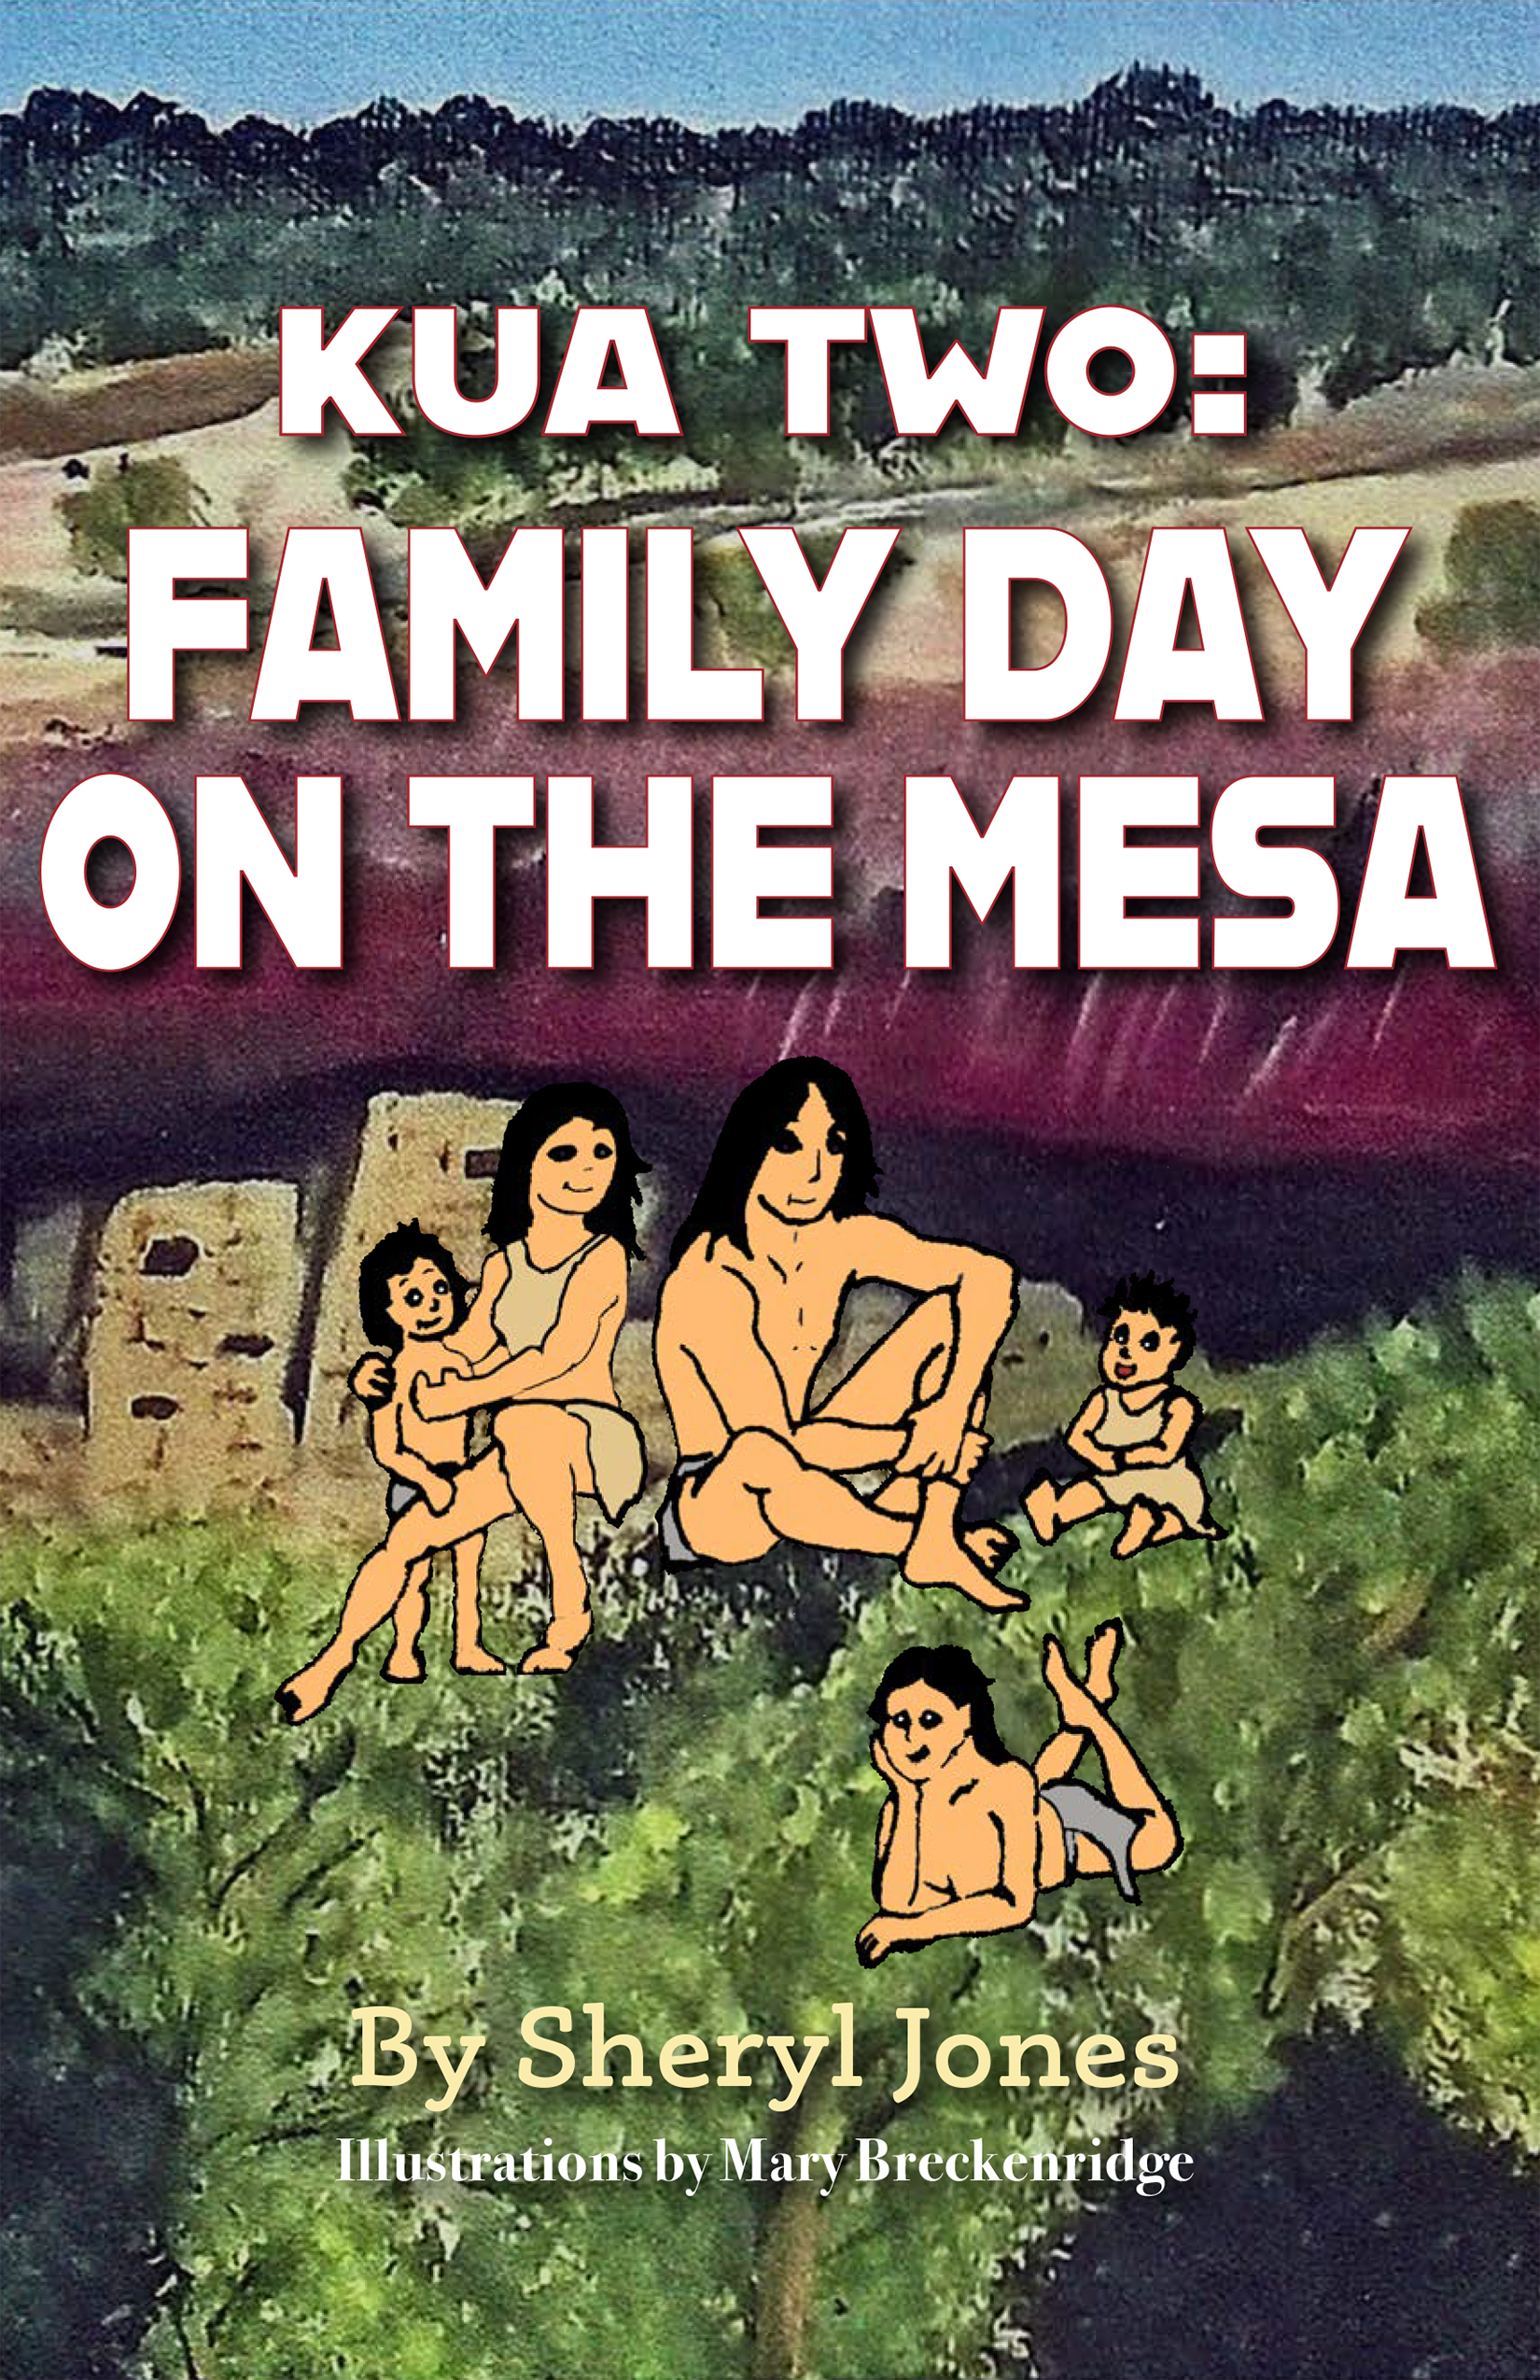 Kua Two: Family Day on the Mesa Image